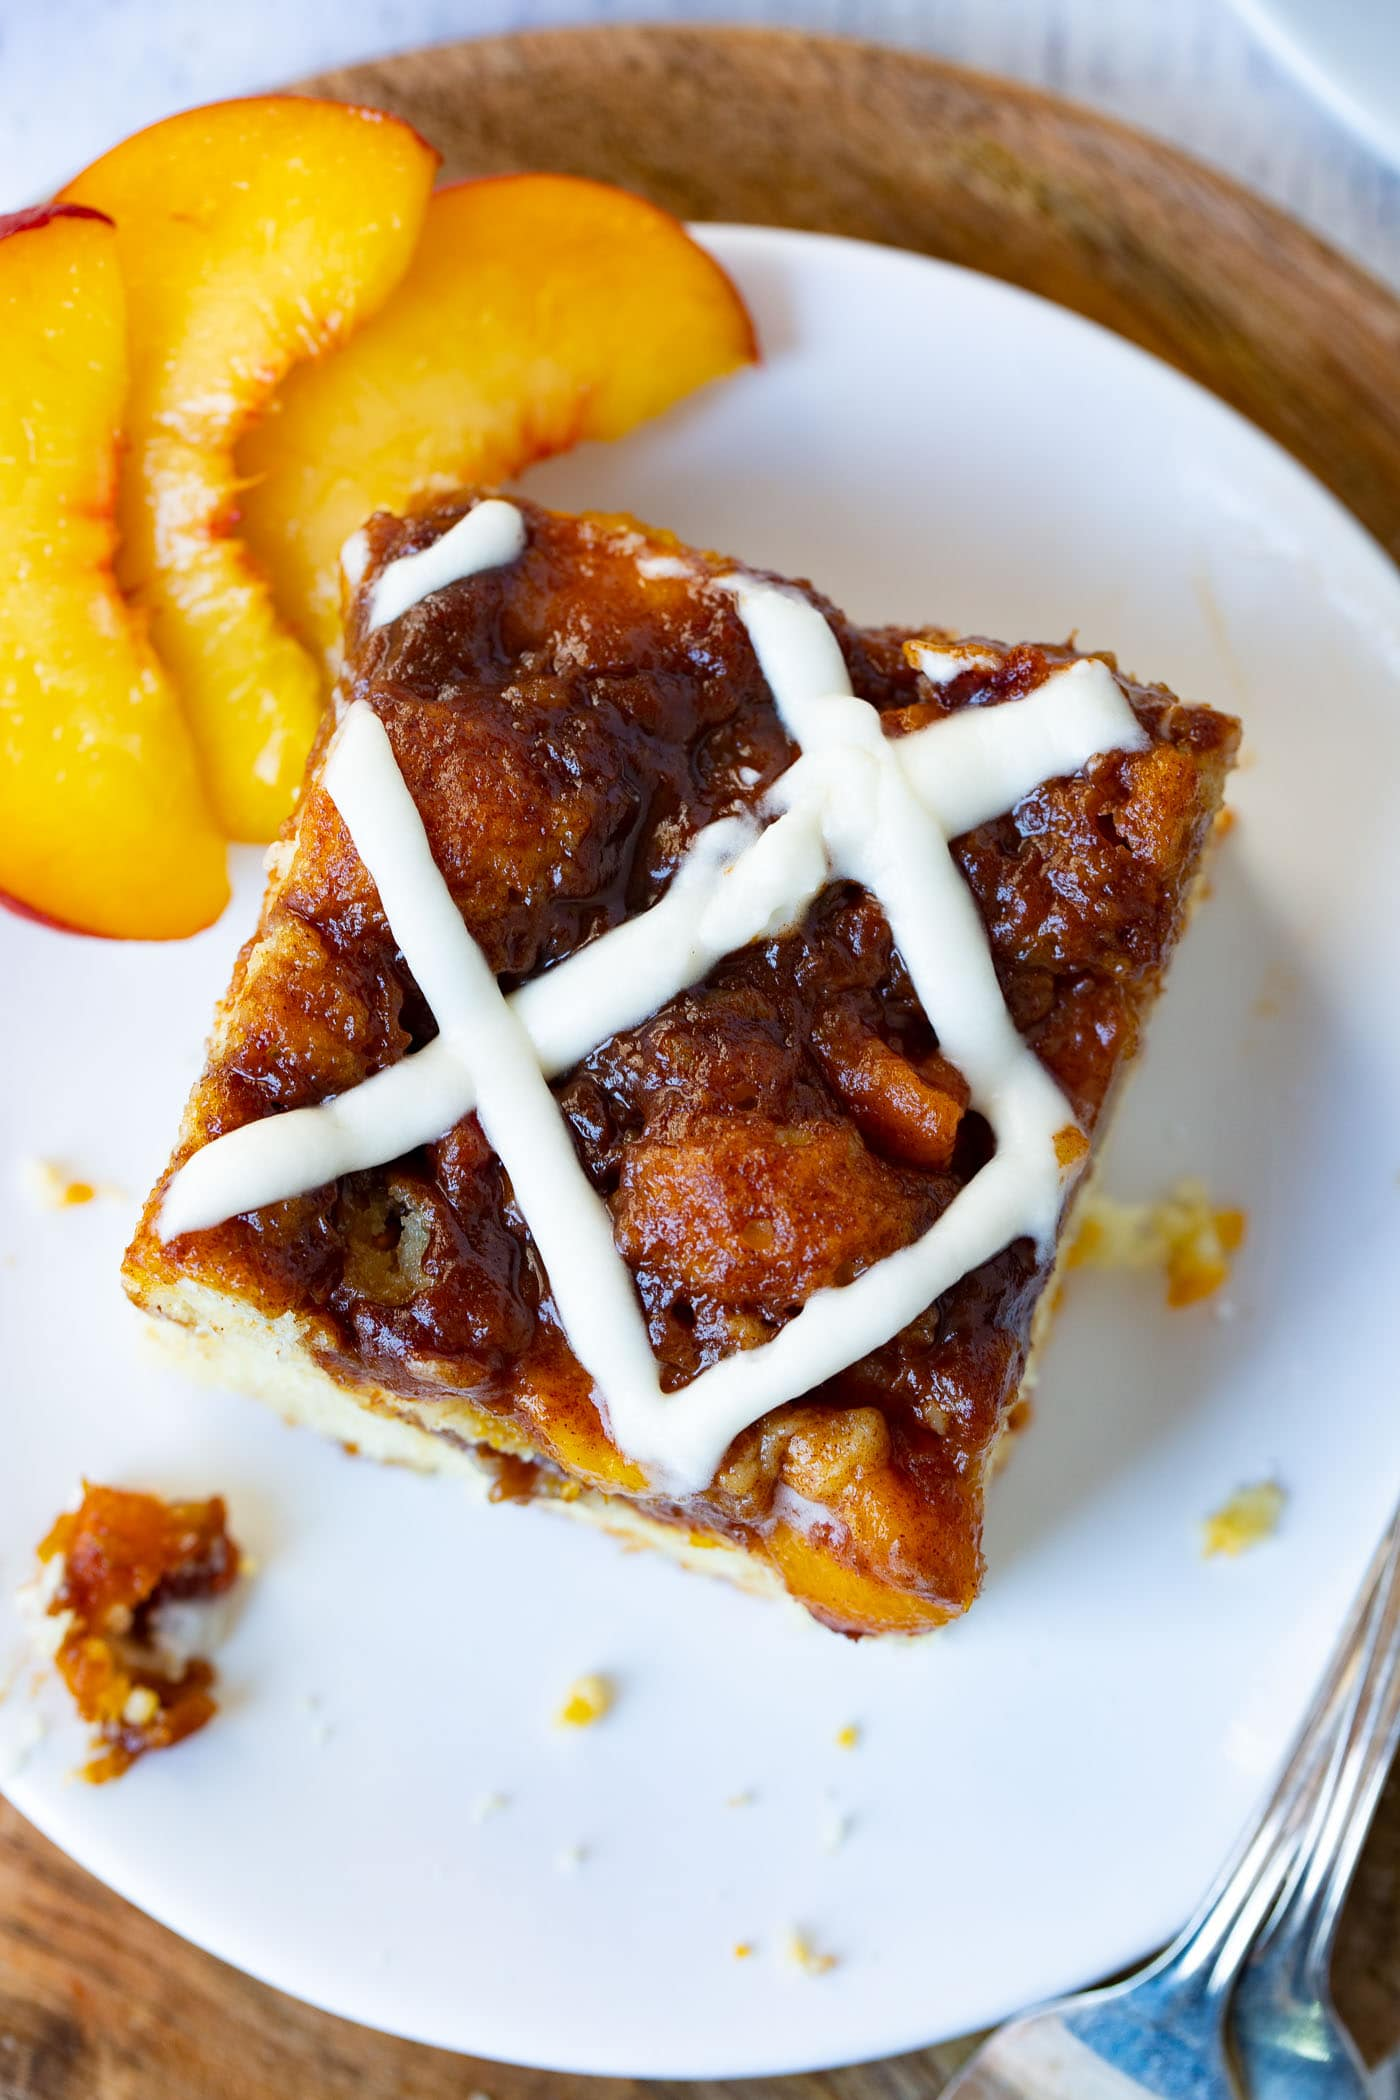 Picture of a peacock one-piece coffee cake covered in sweet glaze sitting on a white plate with three peach slices sitting next to it.